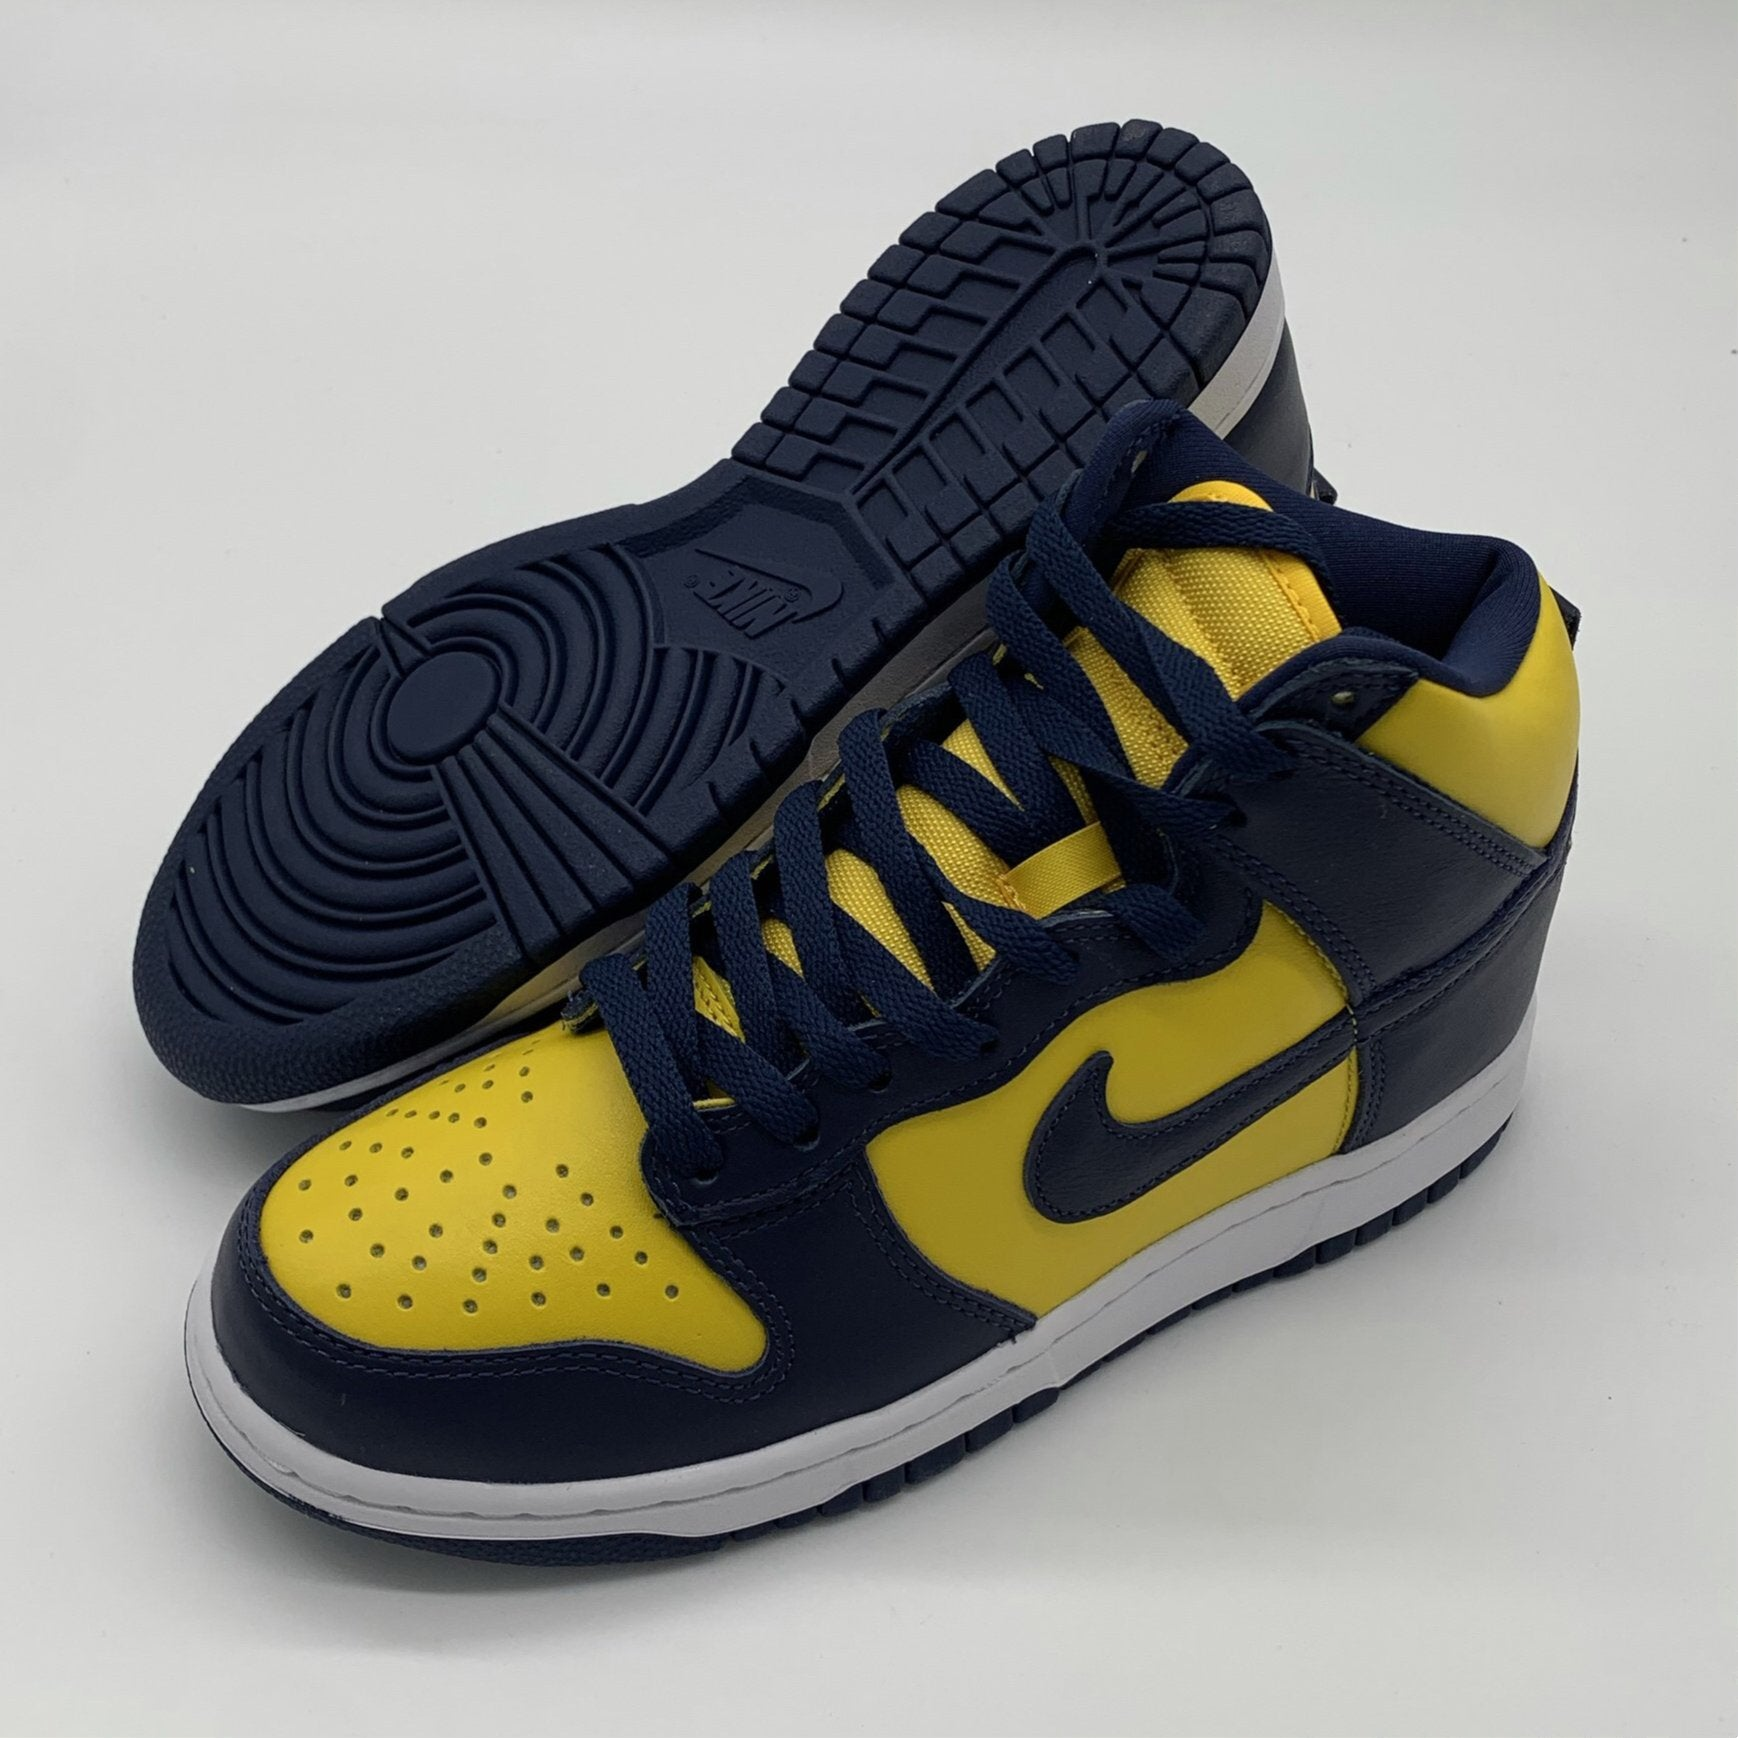 Dunk High 'Michigan' Size 6 DS